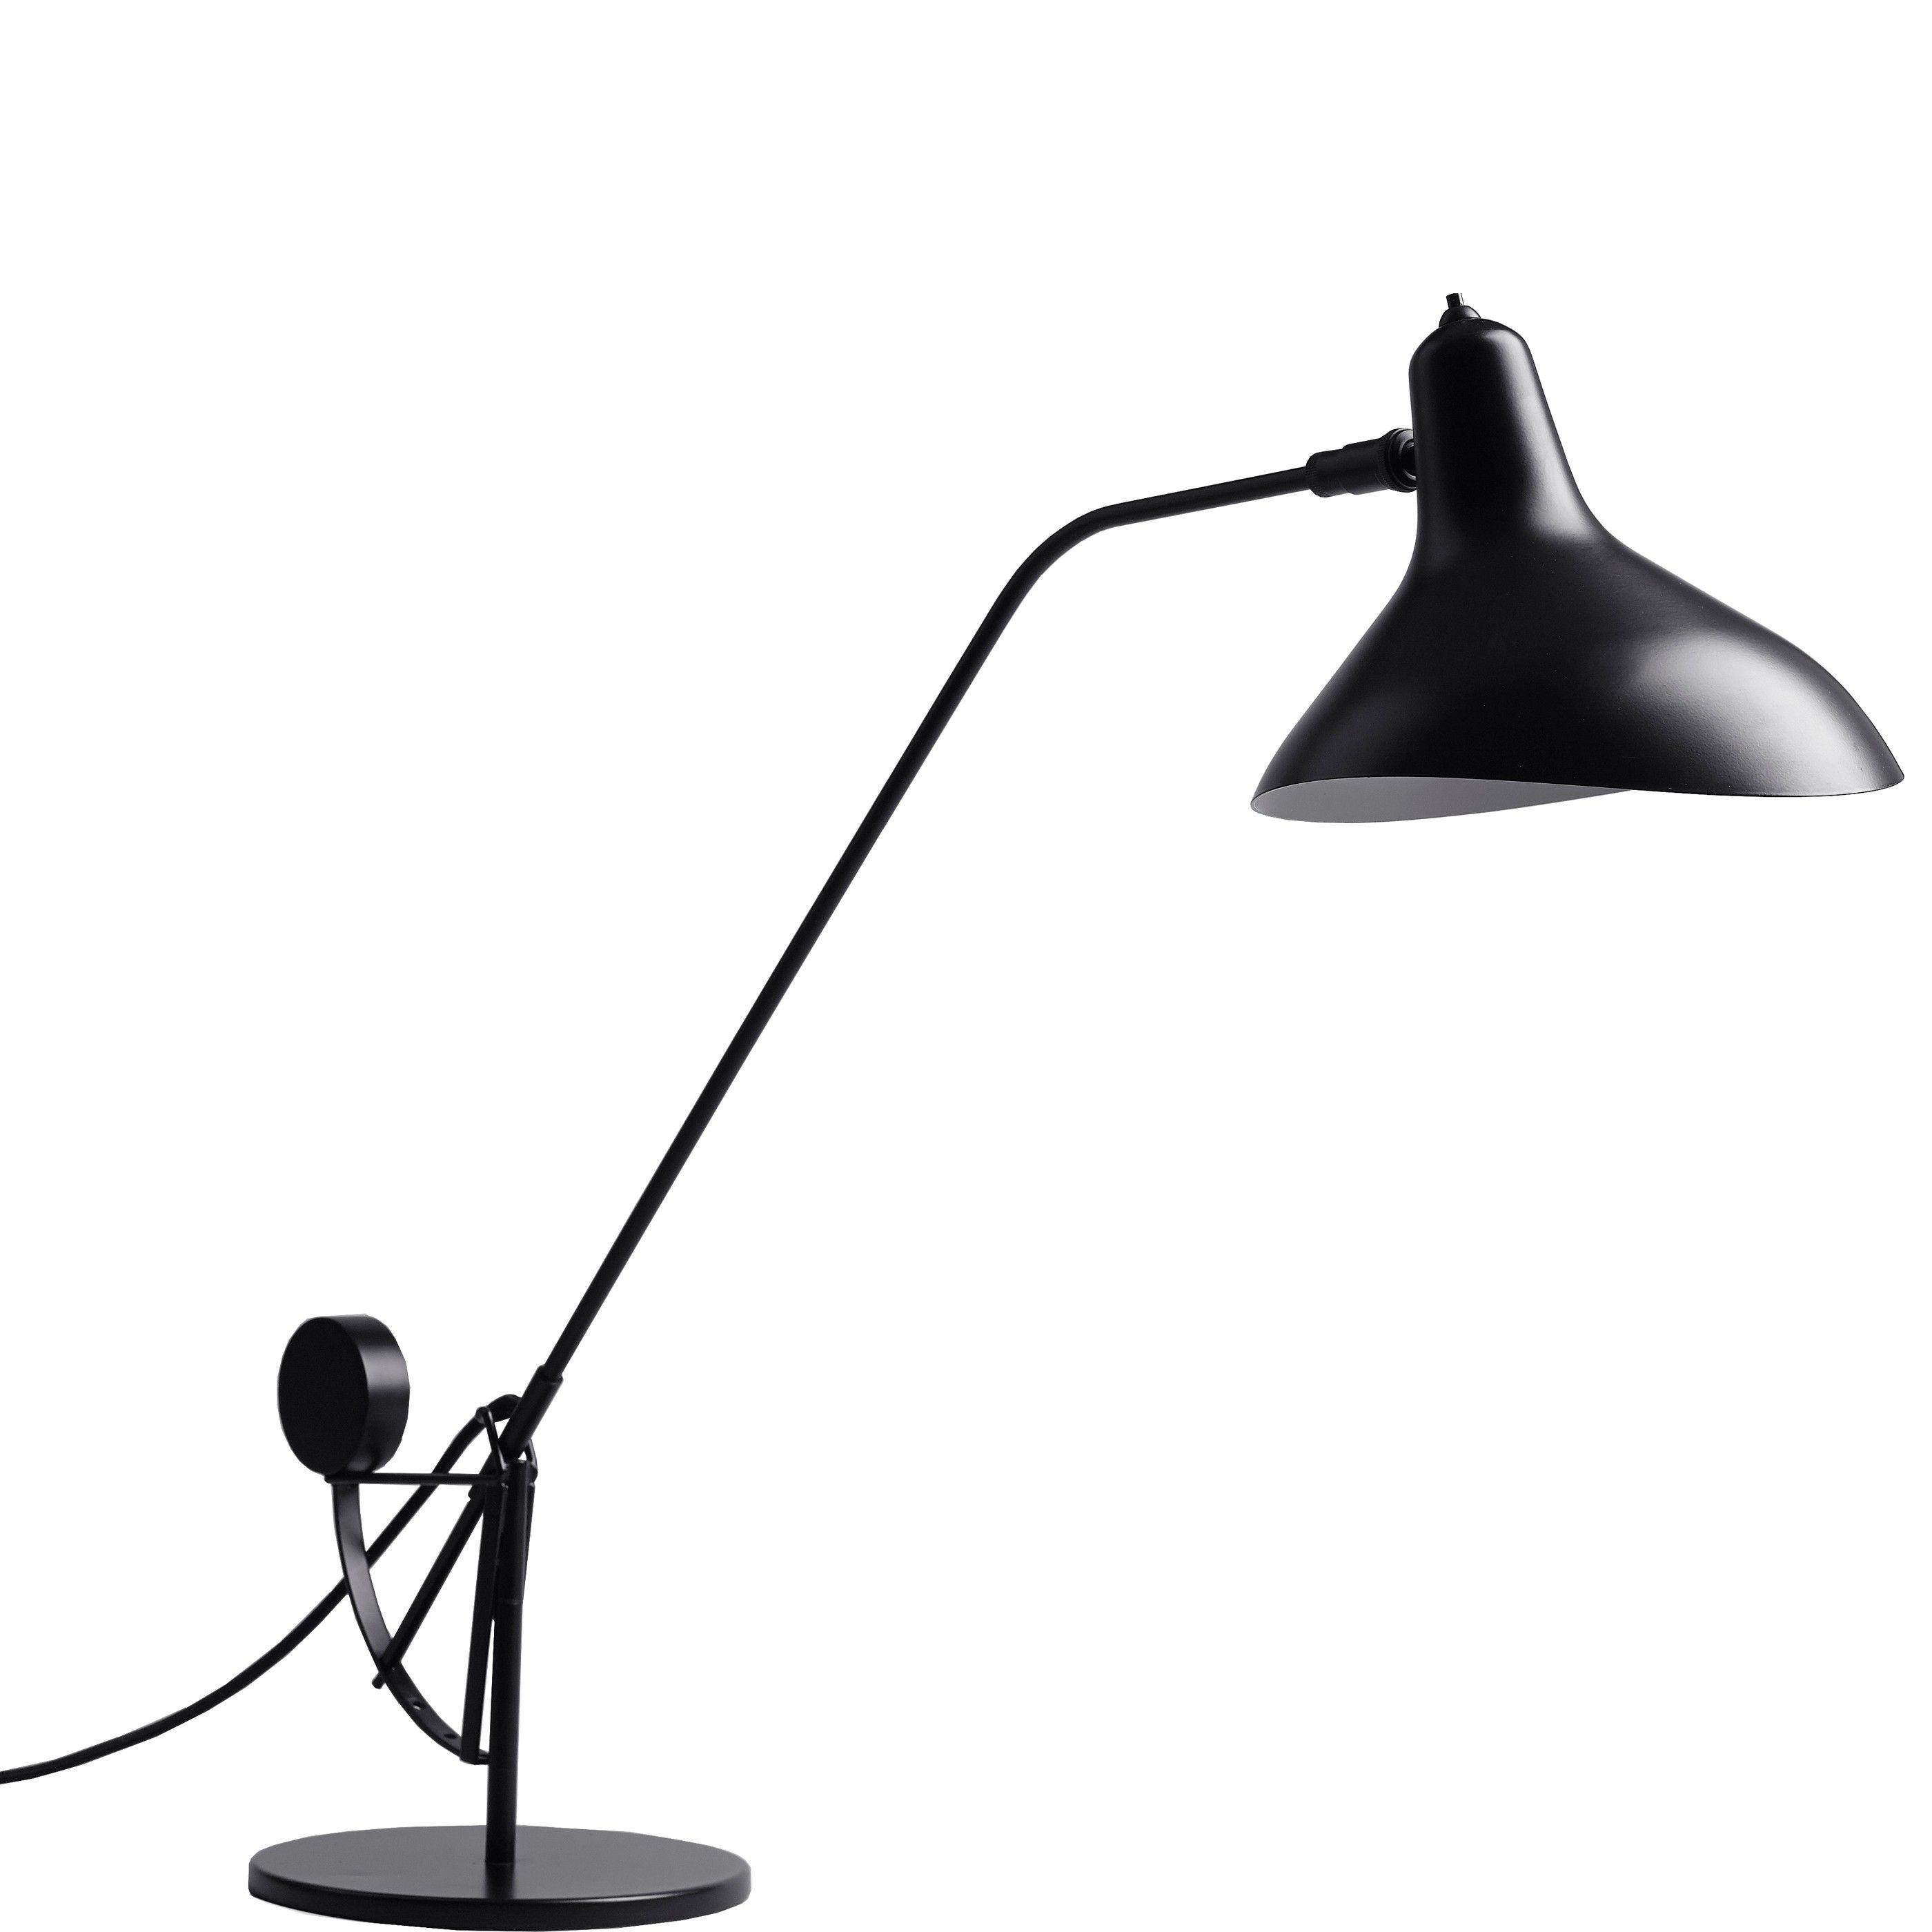 dcw ditions lampe mantis bs3 bureaulamp flinders verzendt gratis. Black Bedroom Furniture Sets. Home Design Ideas